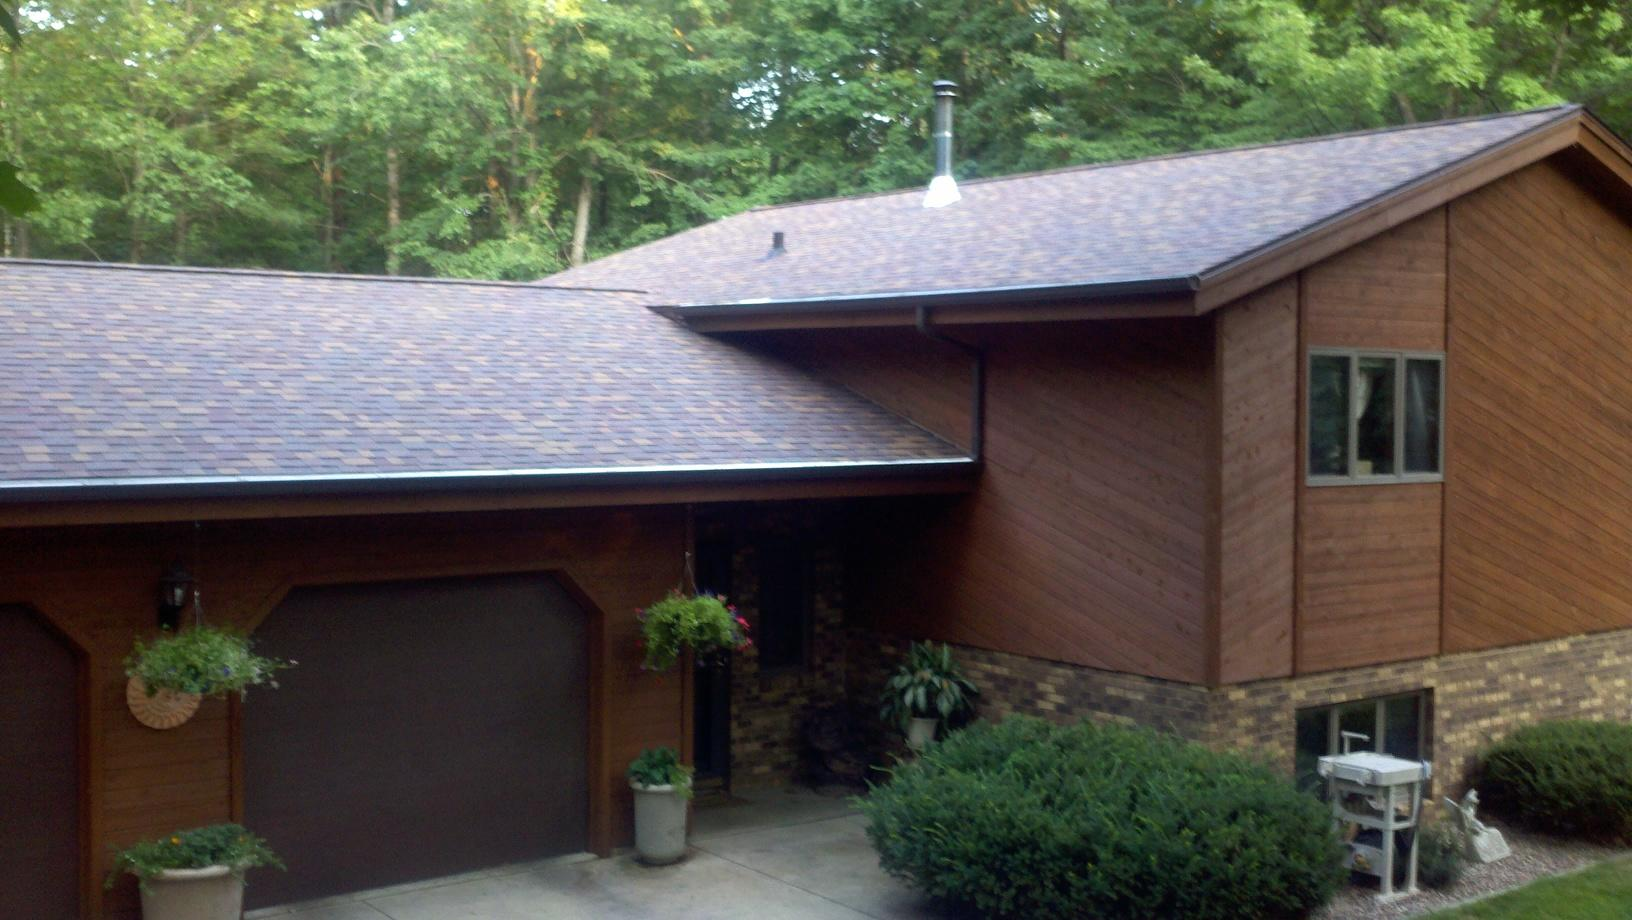 Roofing job in Wausau, WI - After Photo